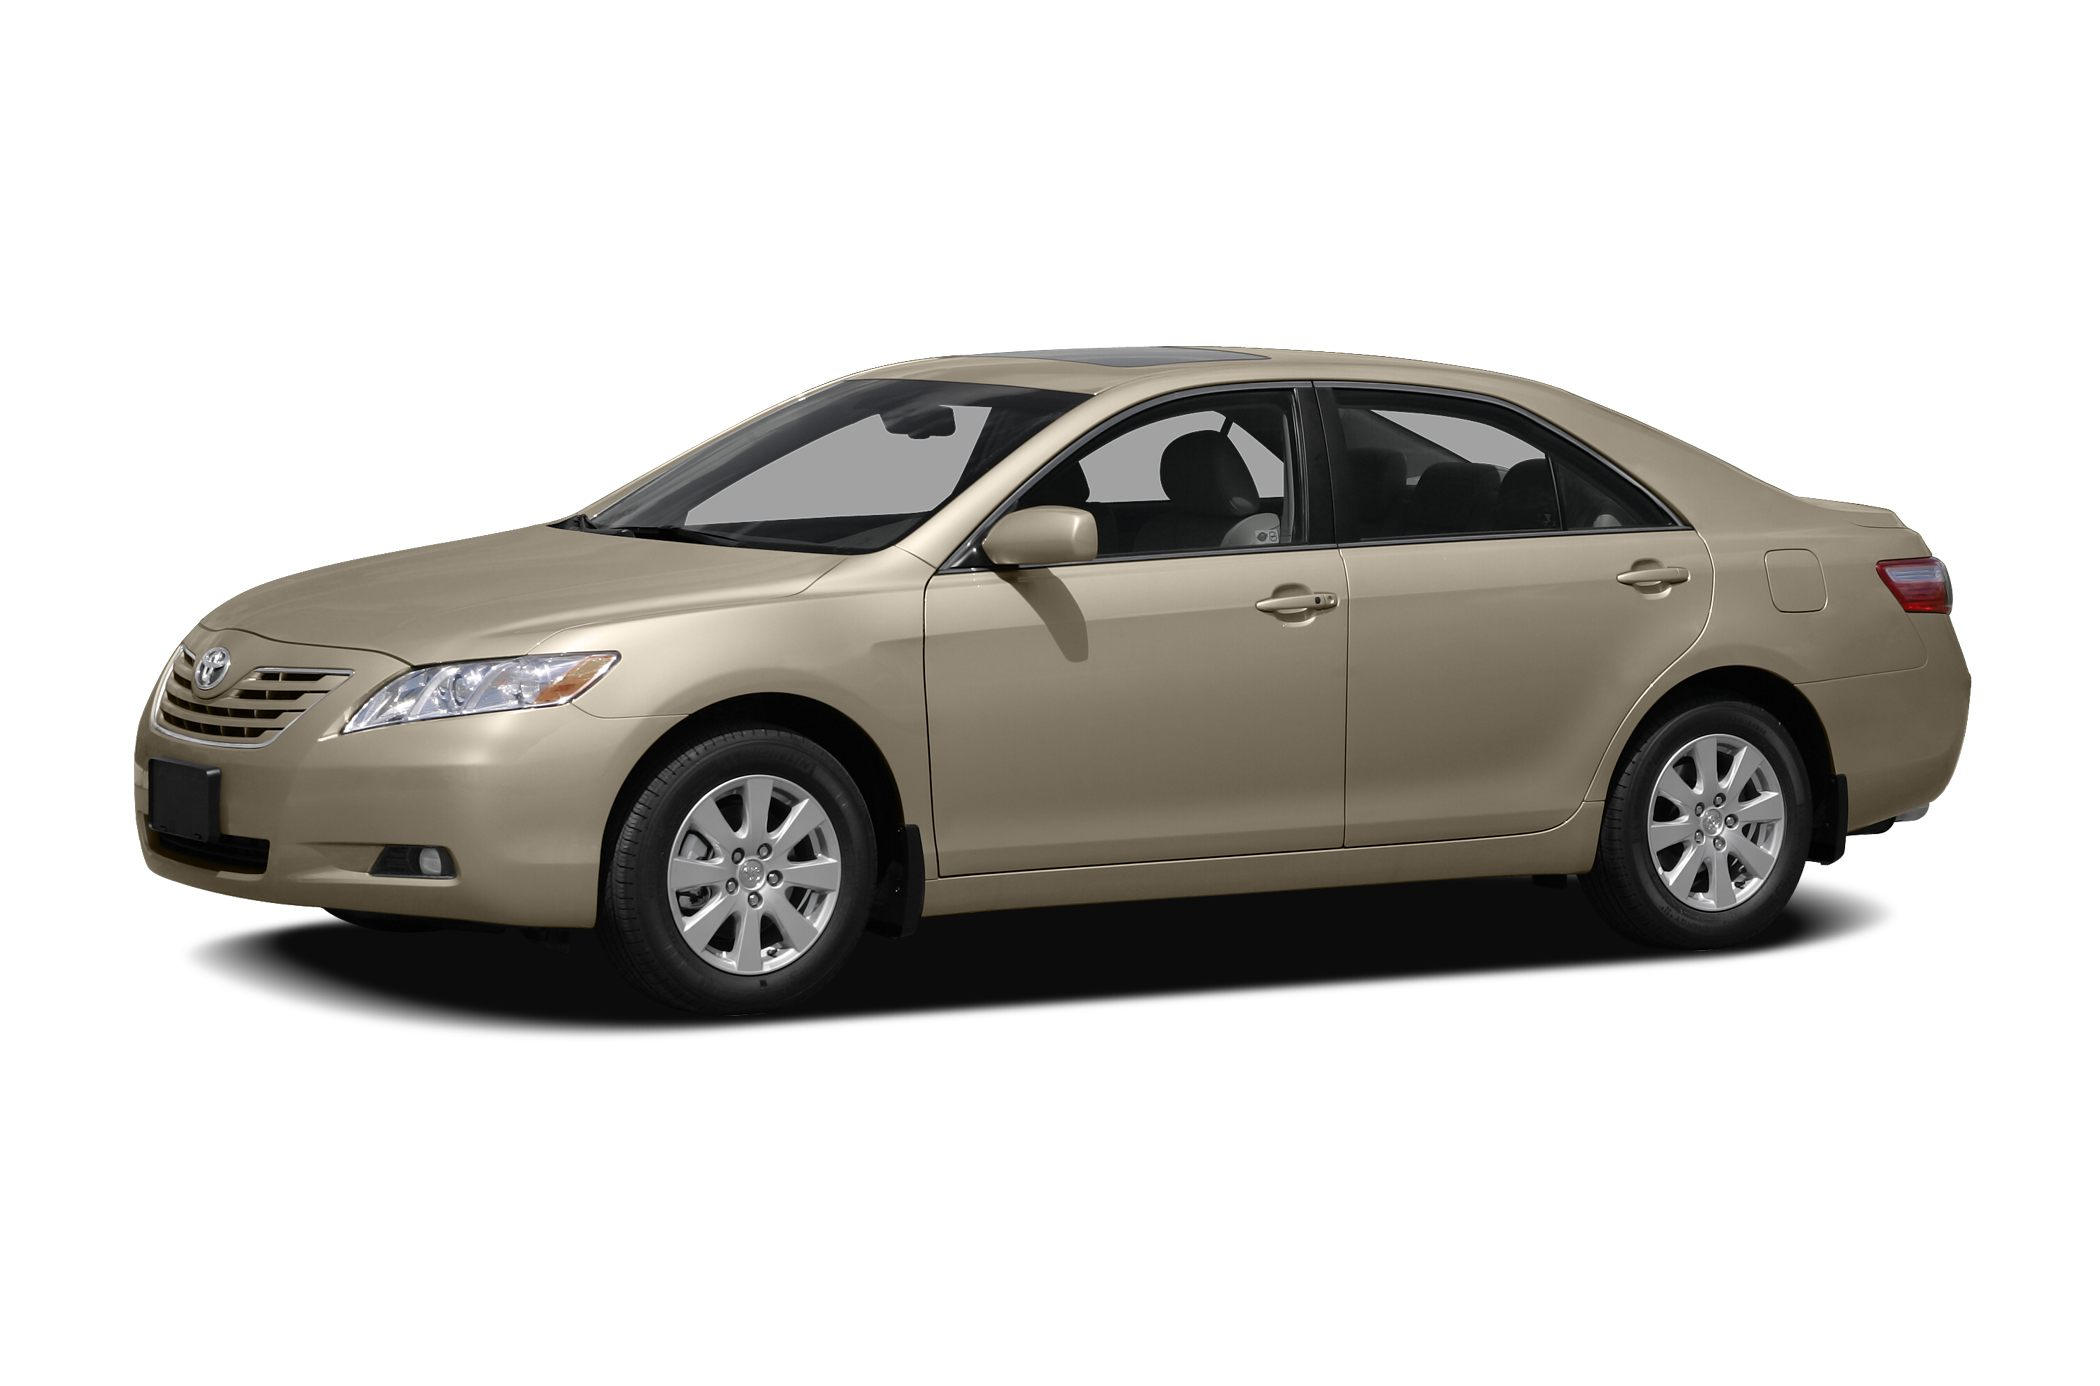 2008 Toyota Camry LE Sedan for sale in Florence for $10,797 with 107,424 miles.